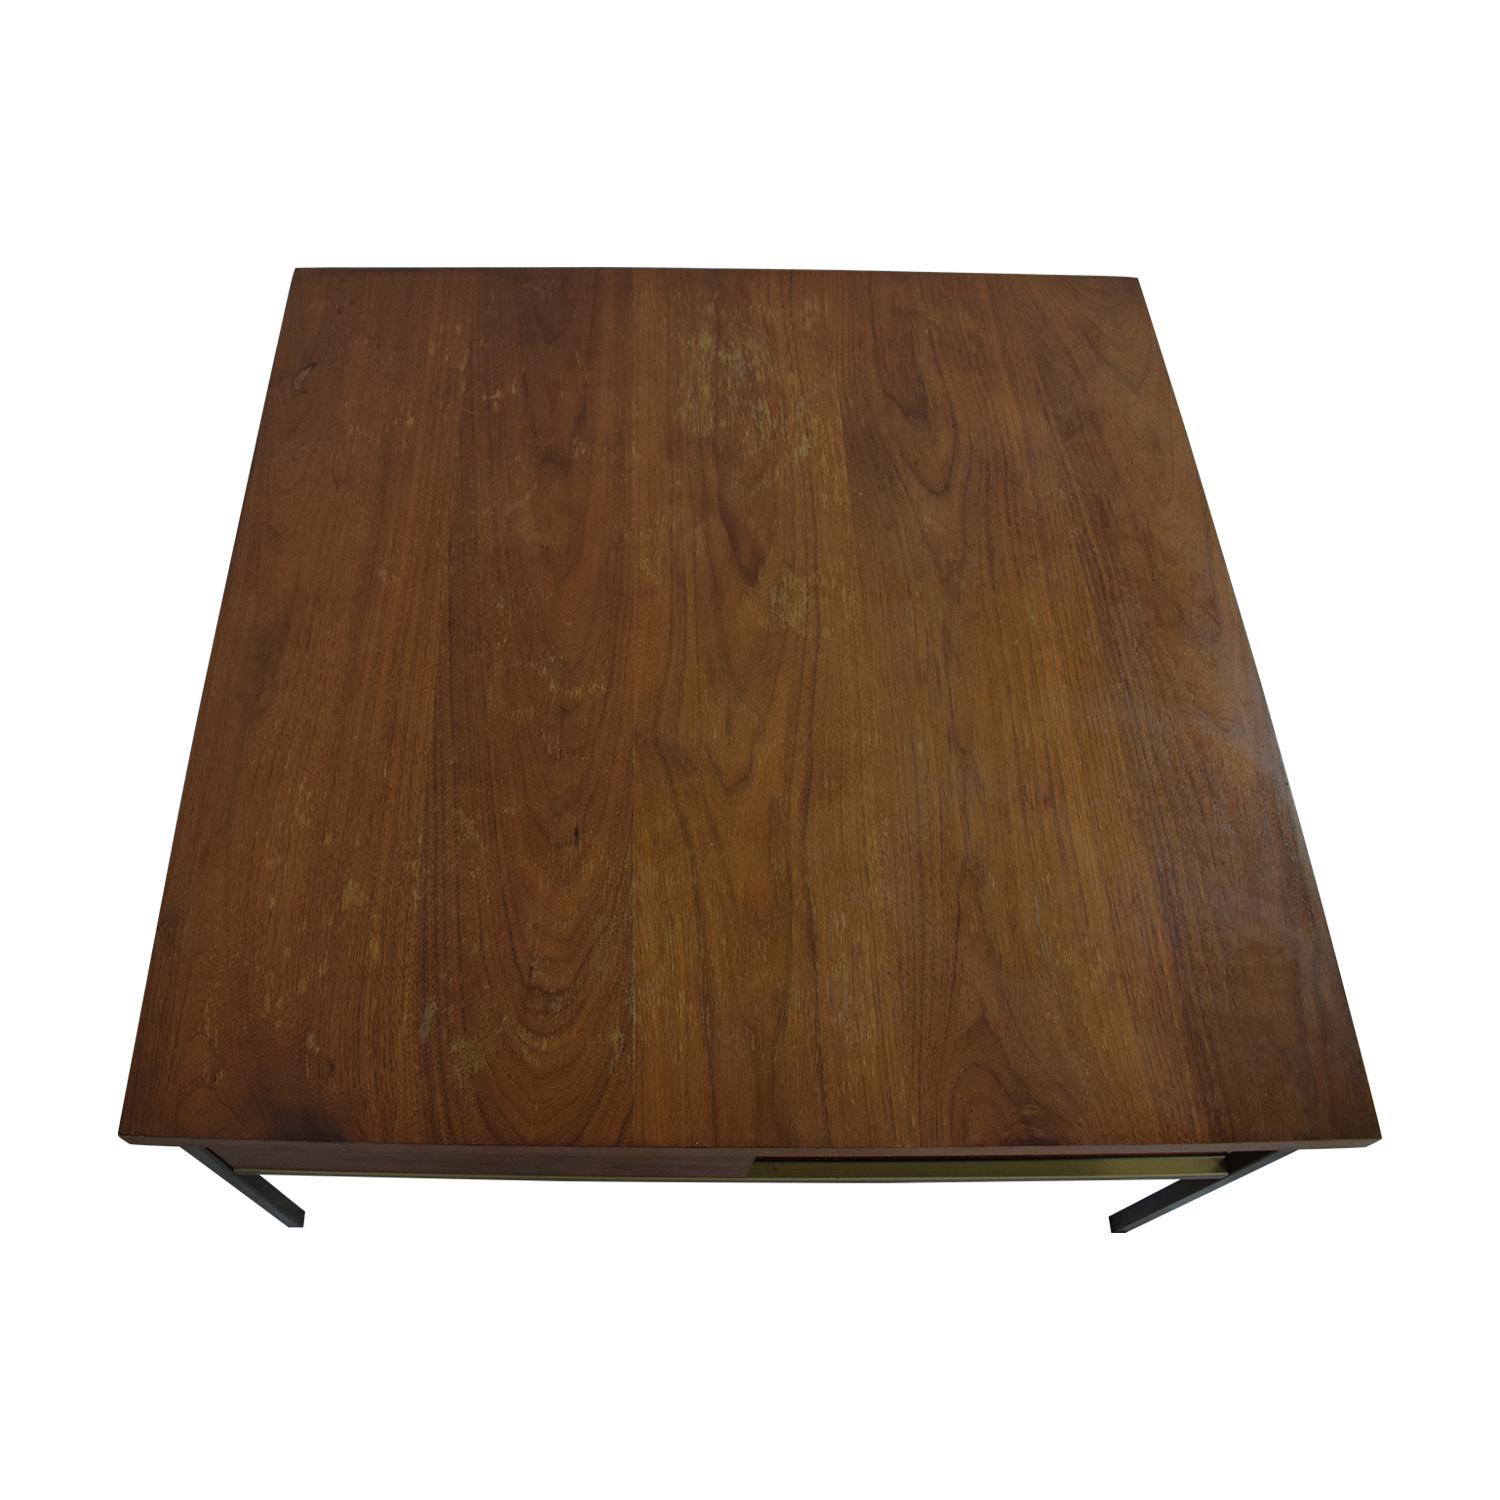 65 off west elm west elm nook coffee table tables